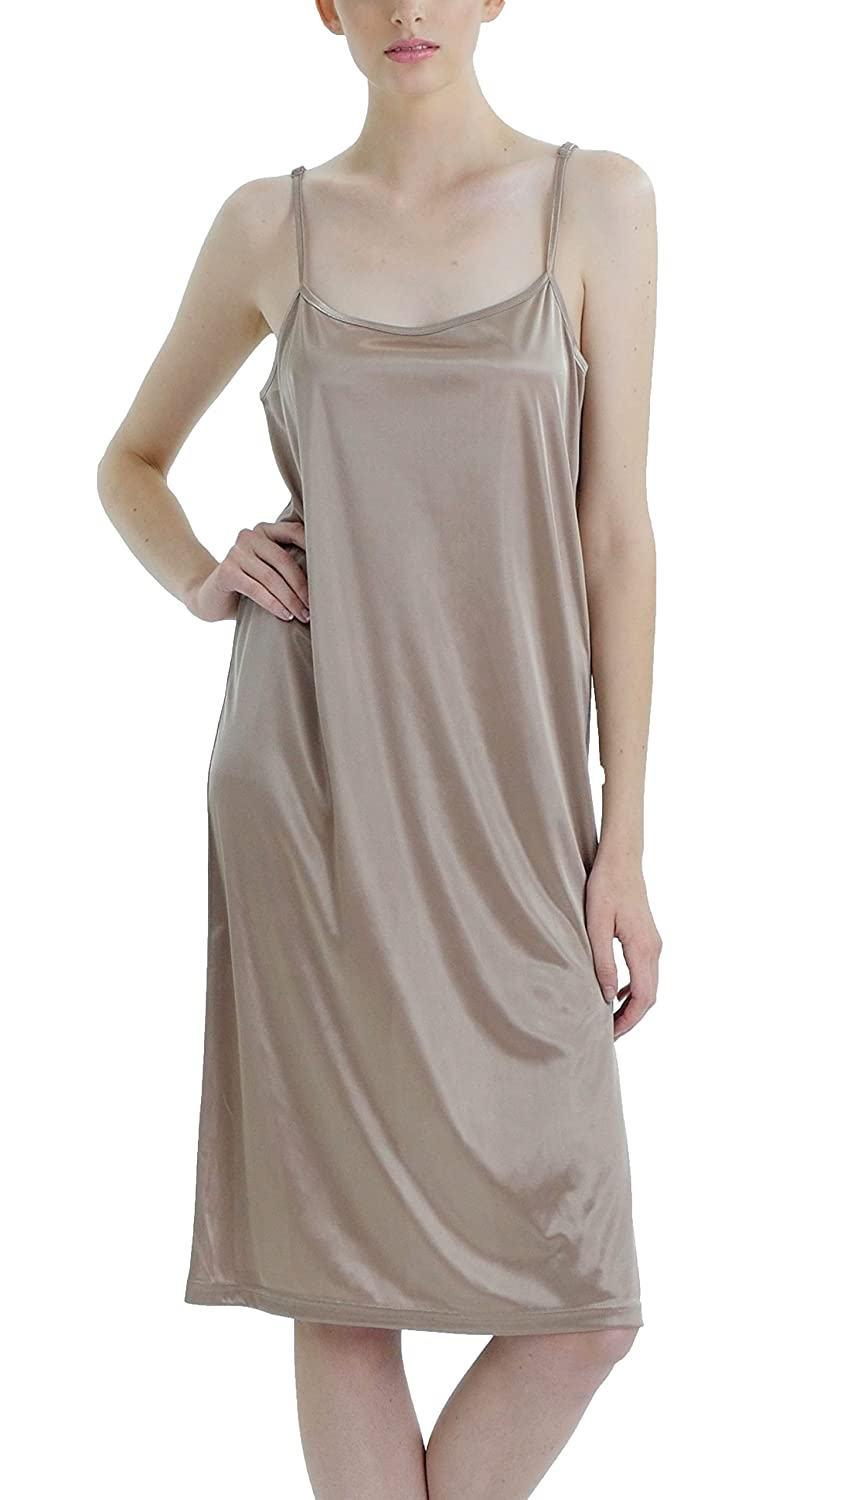 [Shop Lev] Women Basic Satin Full Slip Chemise